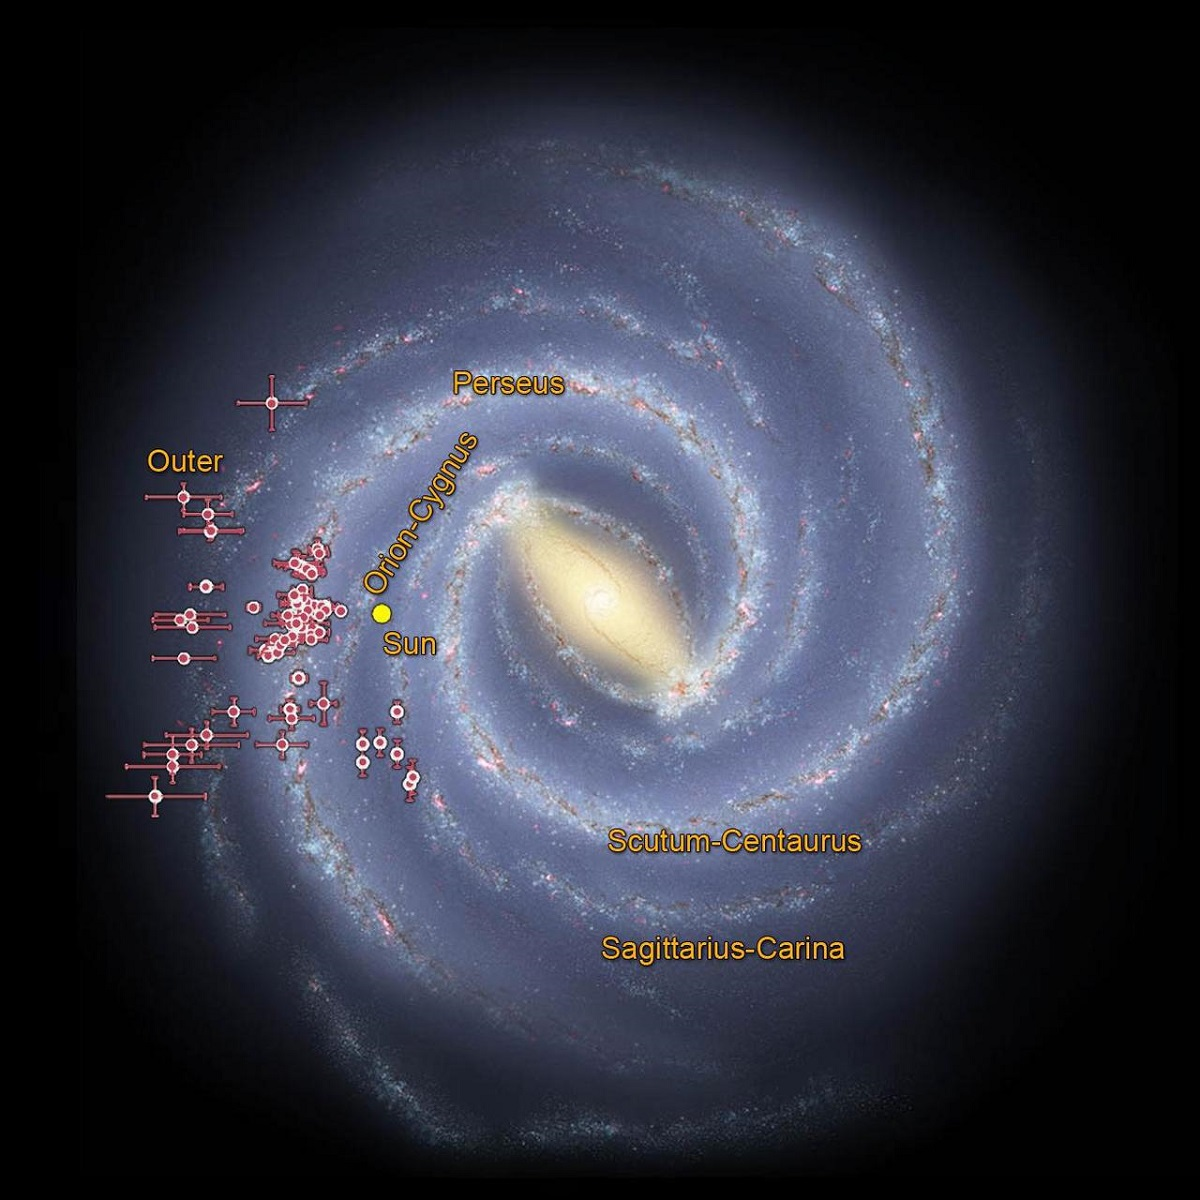 Tracing the arms of our milky way galaxy - NASA photos on Silver Magazine www.silvermagazine.co.uk